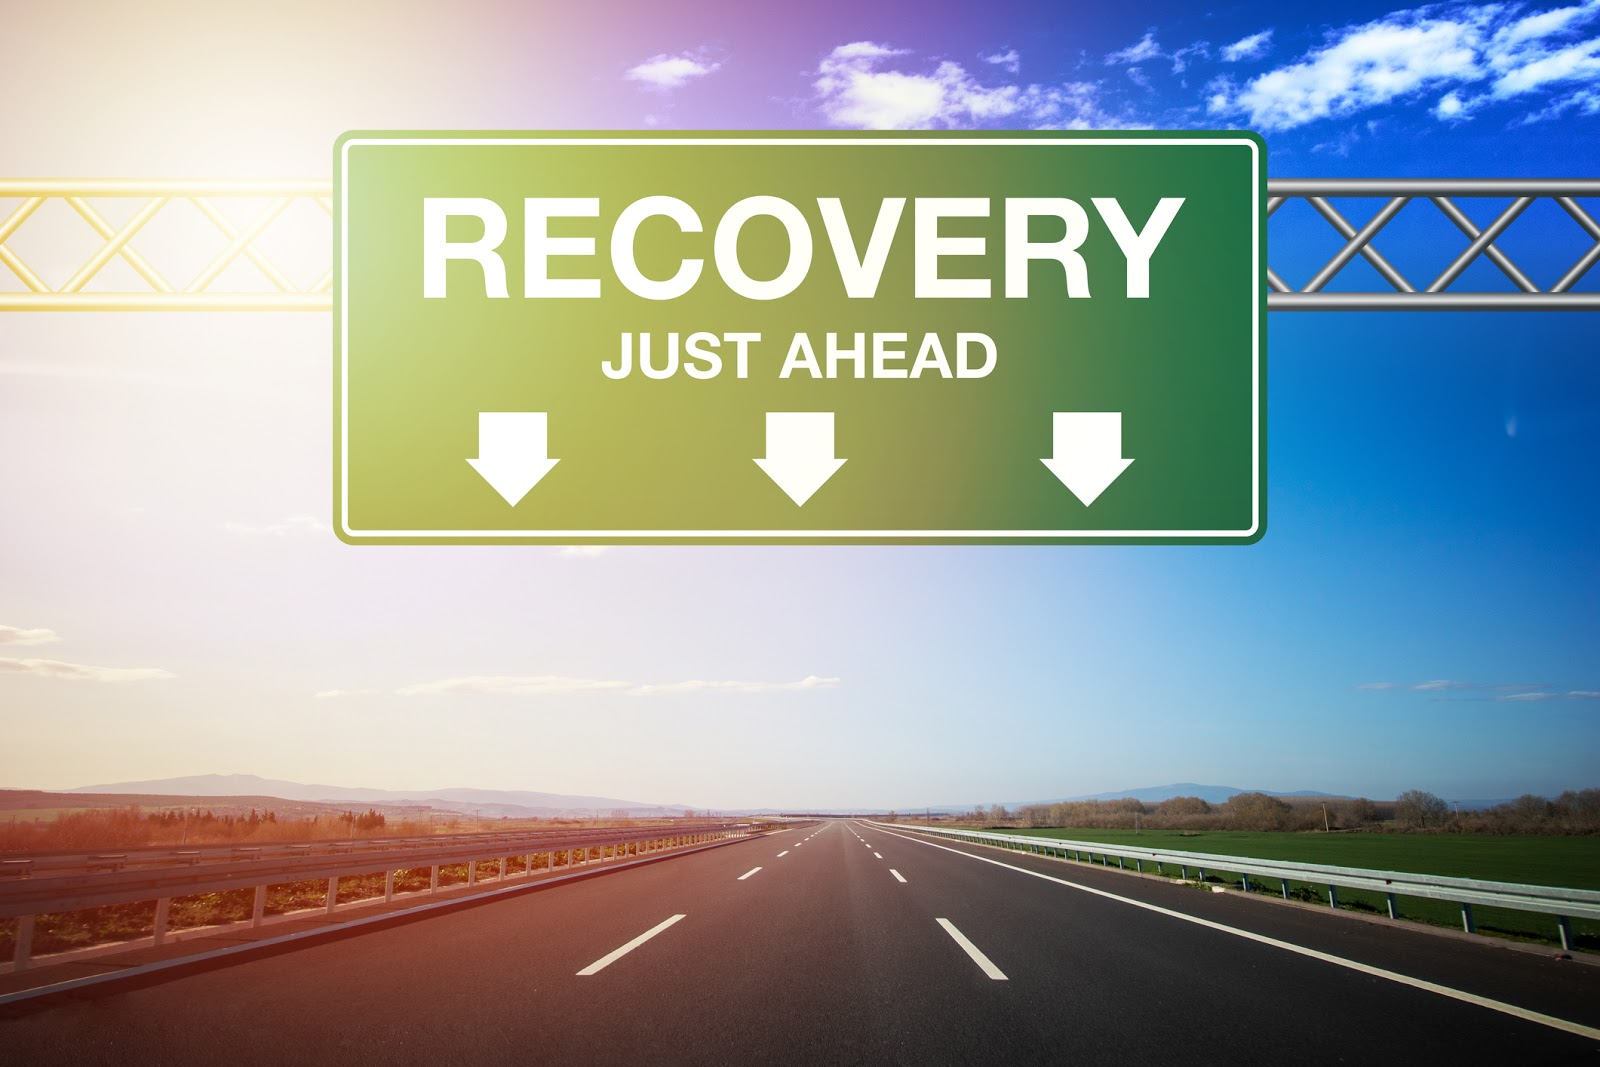 The Road to Recovery from COVID-19